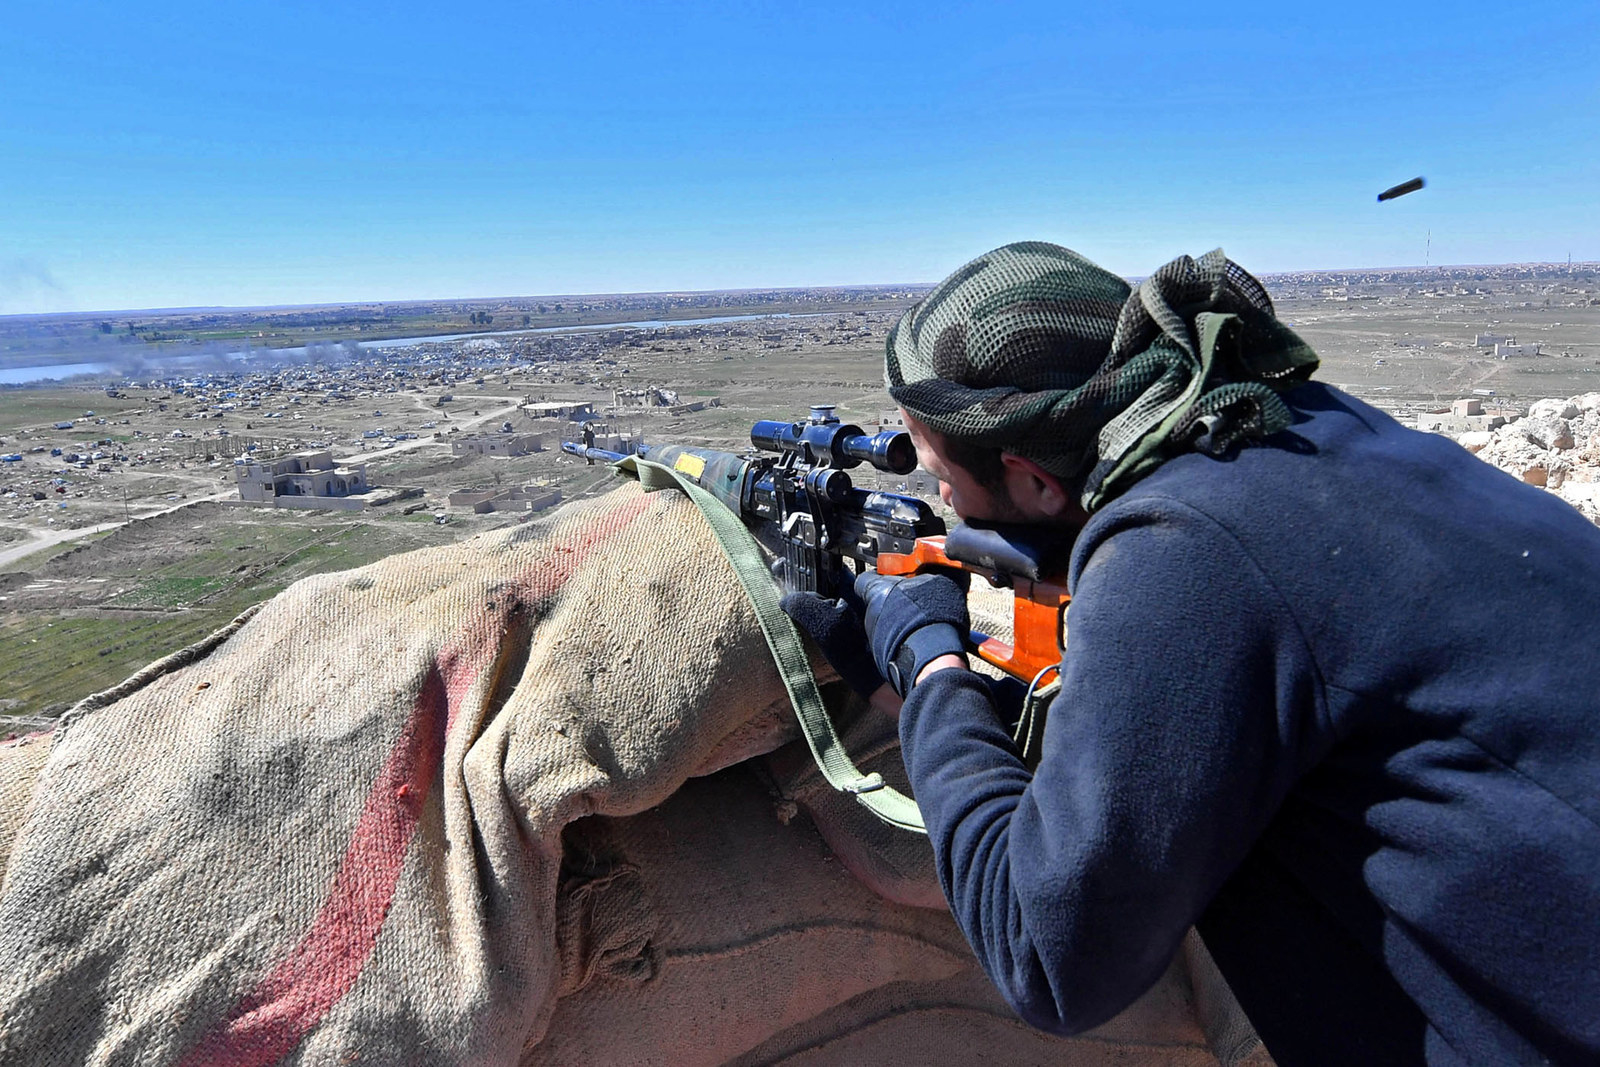 A sniper with the Syrian Democratic Forces opens fire toward Baghouz, Syria, where remaining Islamic State fighters are holding out in their last position on March 18.